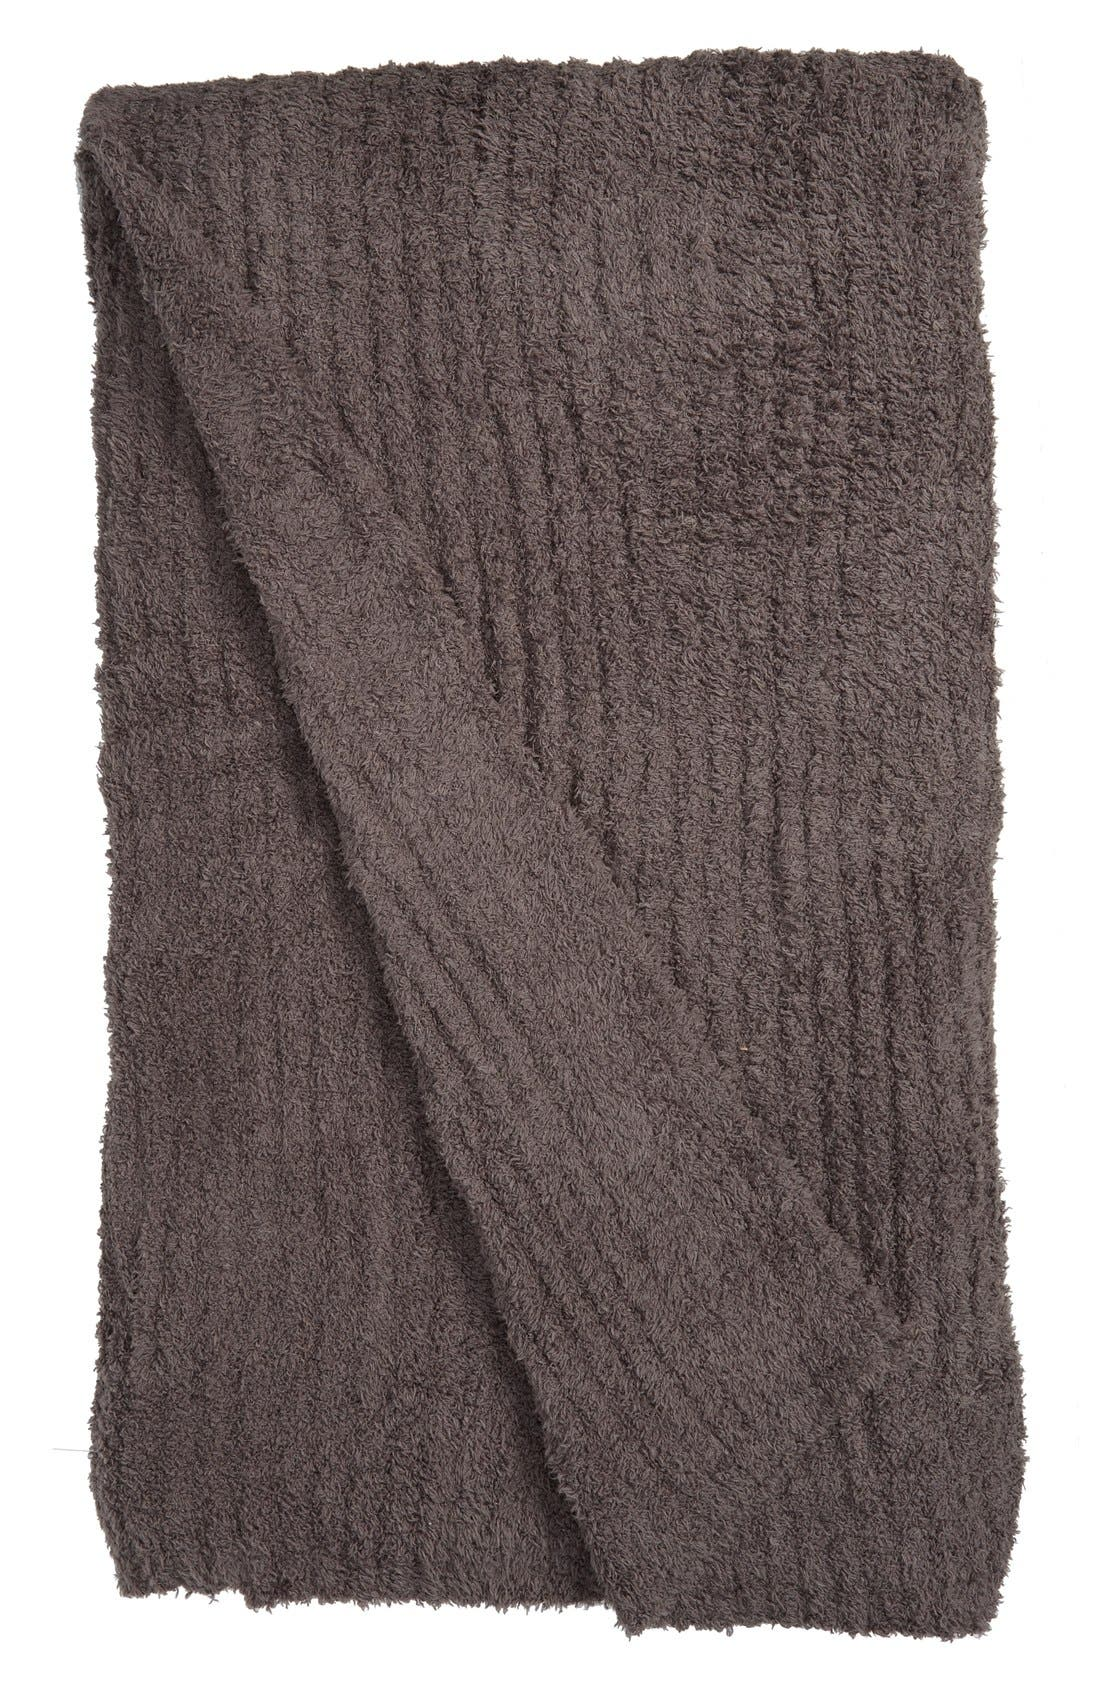 'CozyChic<sup>®</sup>' Ribbed Blanket,                             Main thumbnail 1, color,                             Charcoal